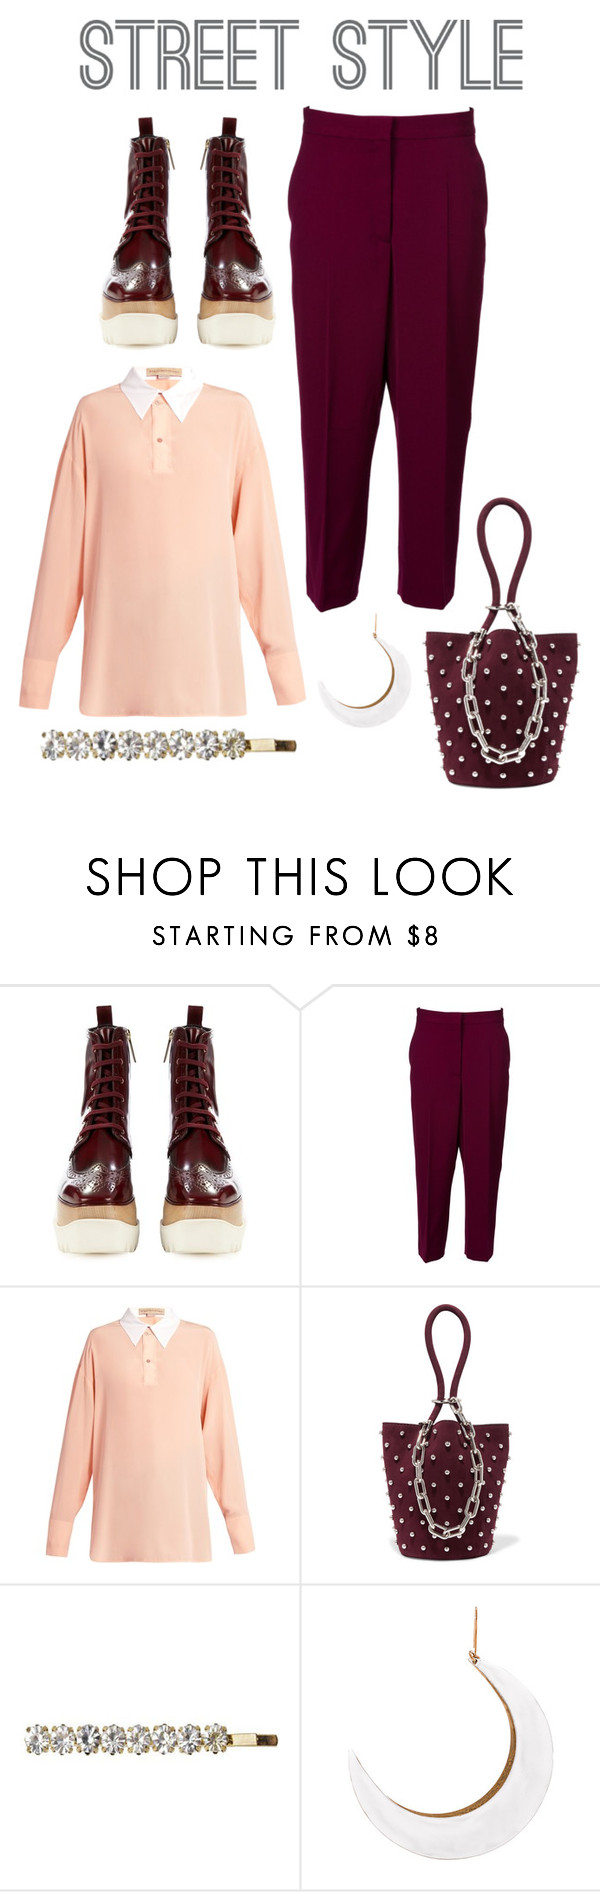 """Elyse"" by perpetto ❤ liked on Polyvore featuring STELLA McCARTNEY, Alexander Wang and Emi-Jay"